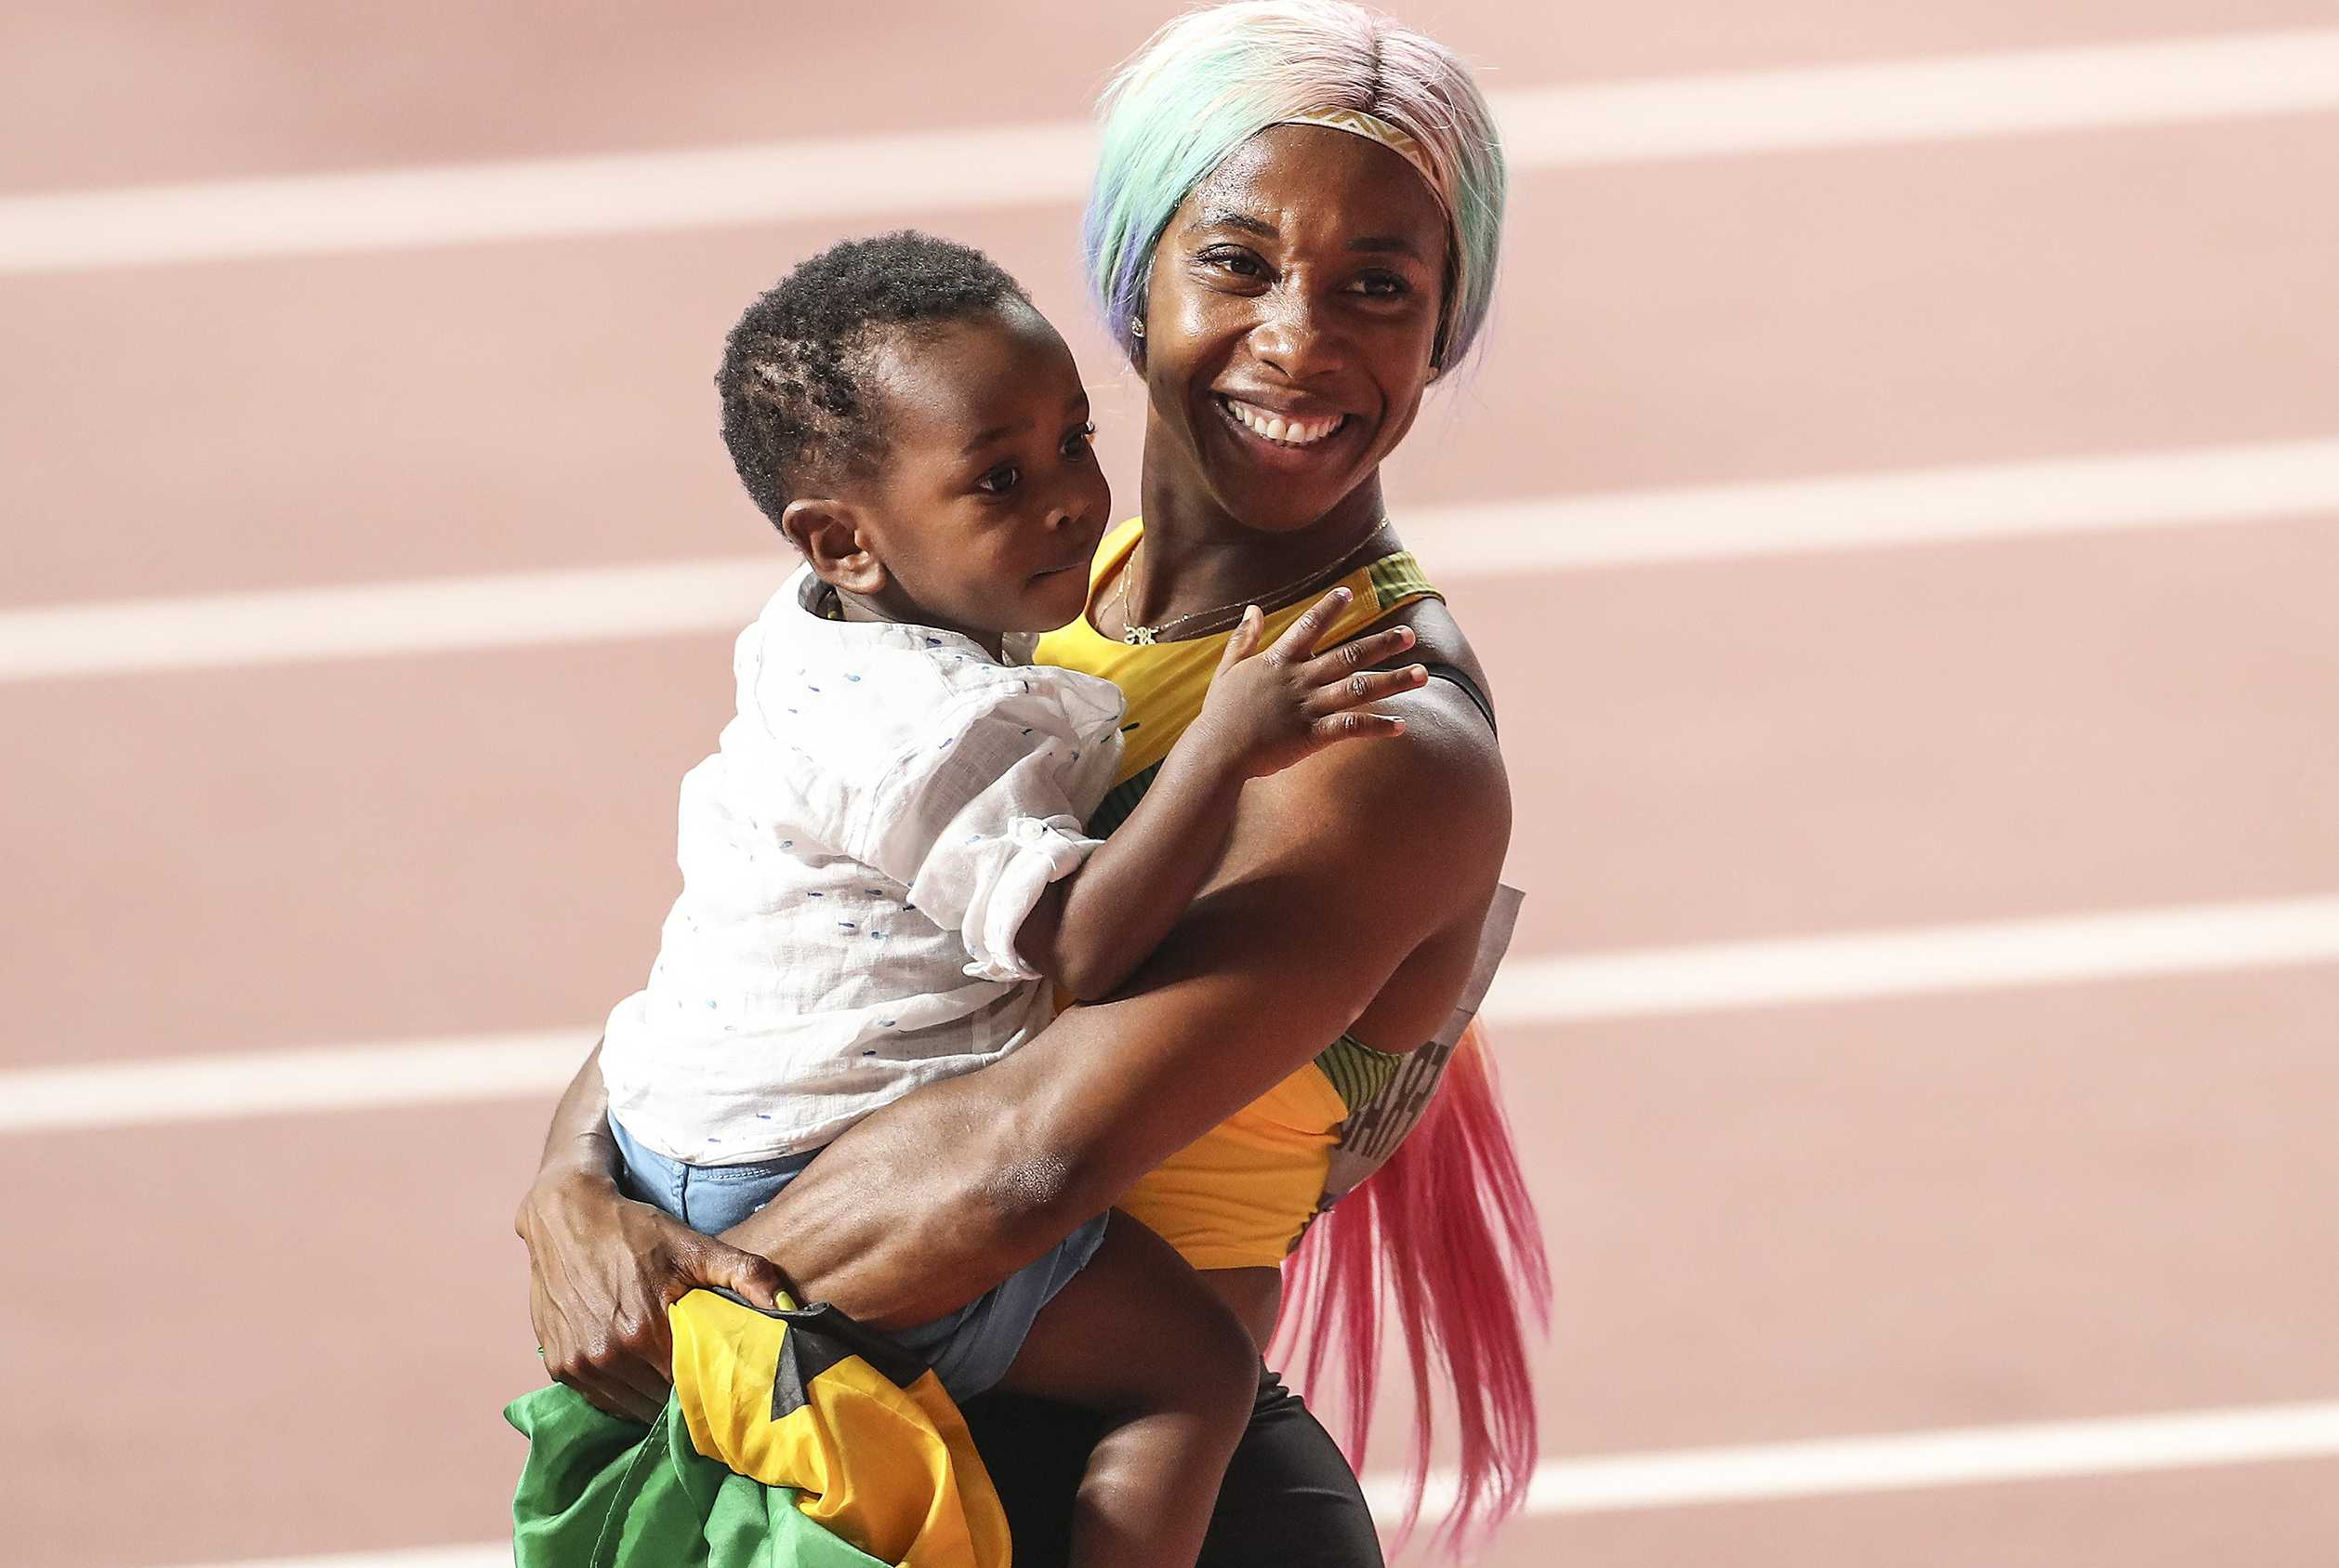 Shelly-Ann Fraser-Pryce Family